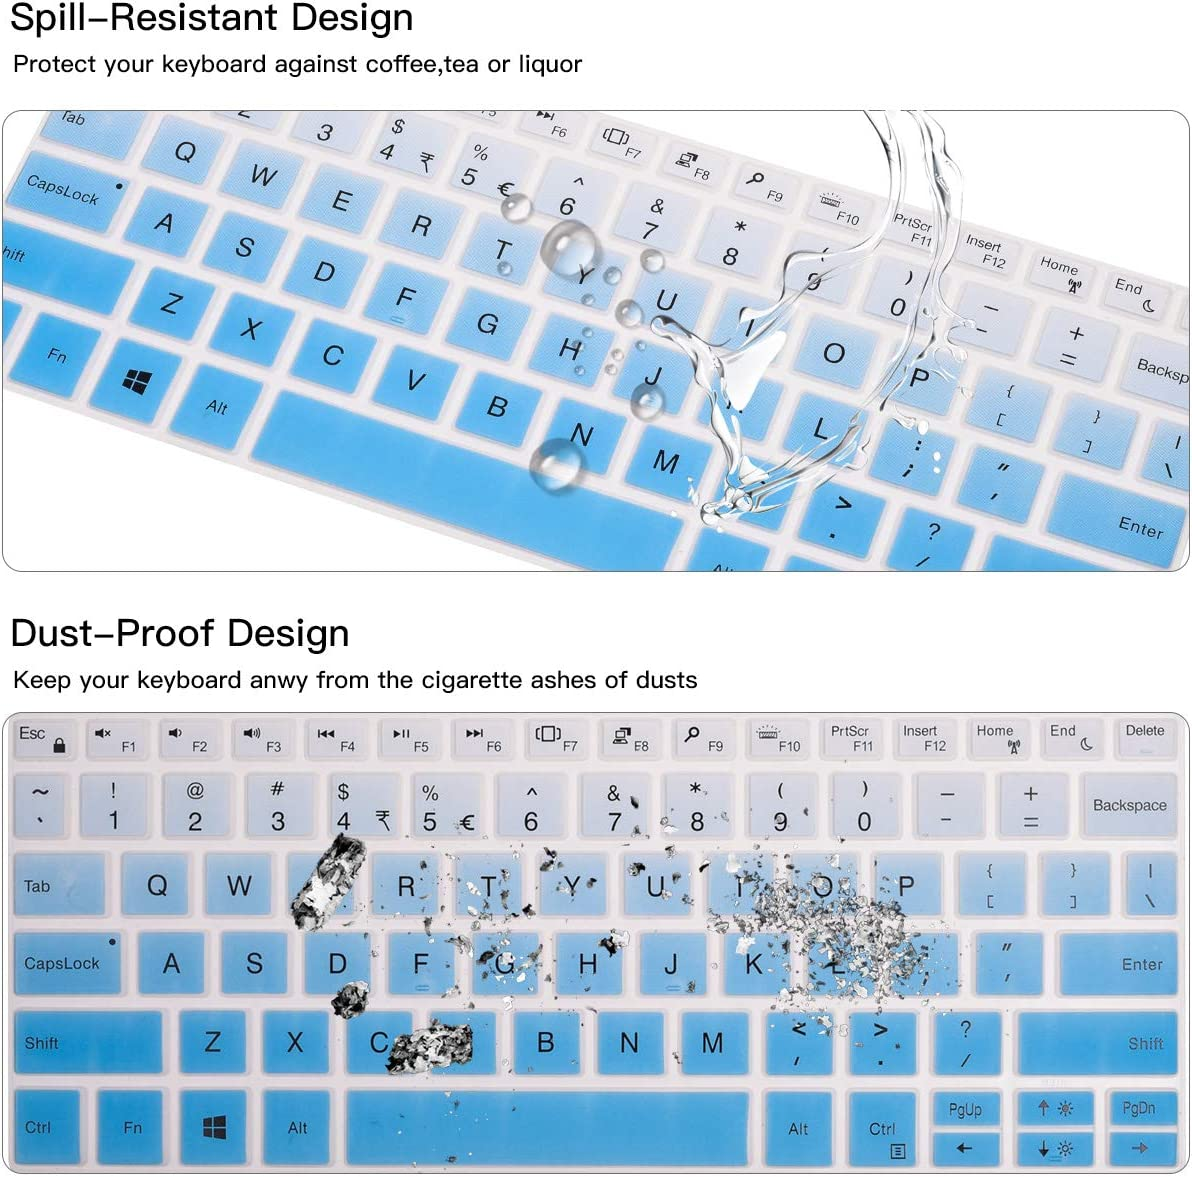 DELL XPS 13 Laptop Keyboard Skin Protector CASEDAO Keyboard Cover for DELL XPS 13 9380 2019 // DELL XPS 13 9370 9365 13.3 inch Laptop Black NOT for XPS 13 7390